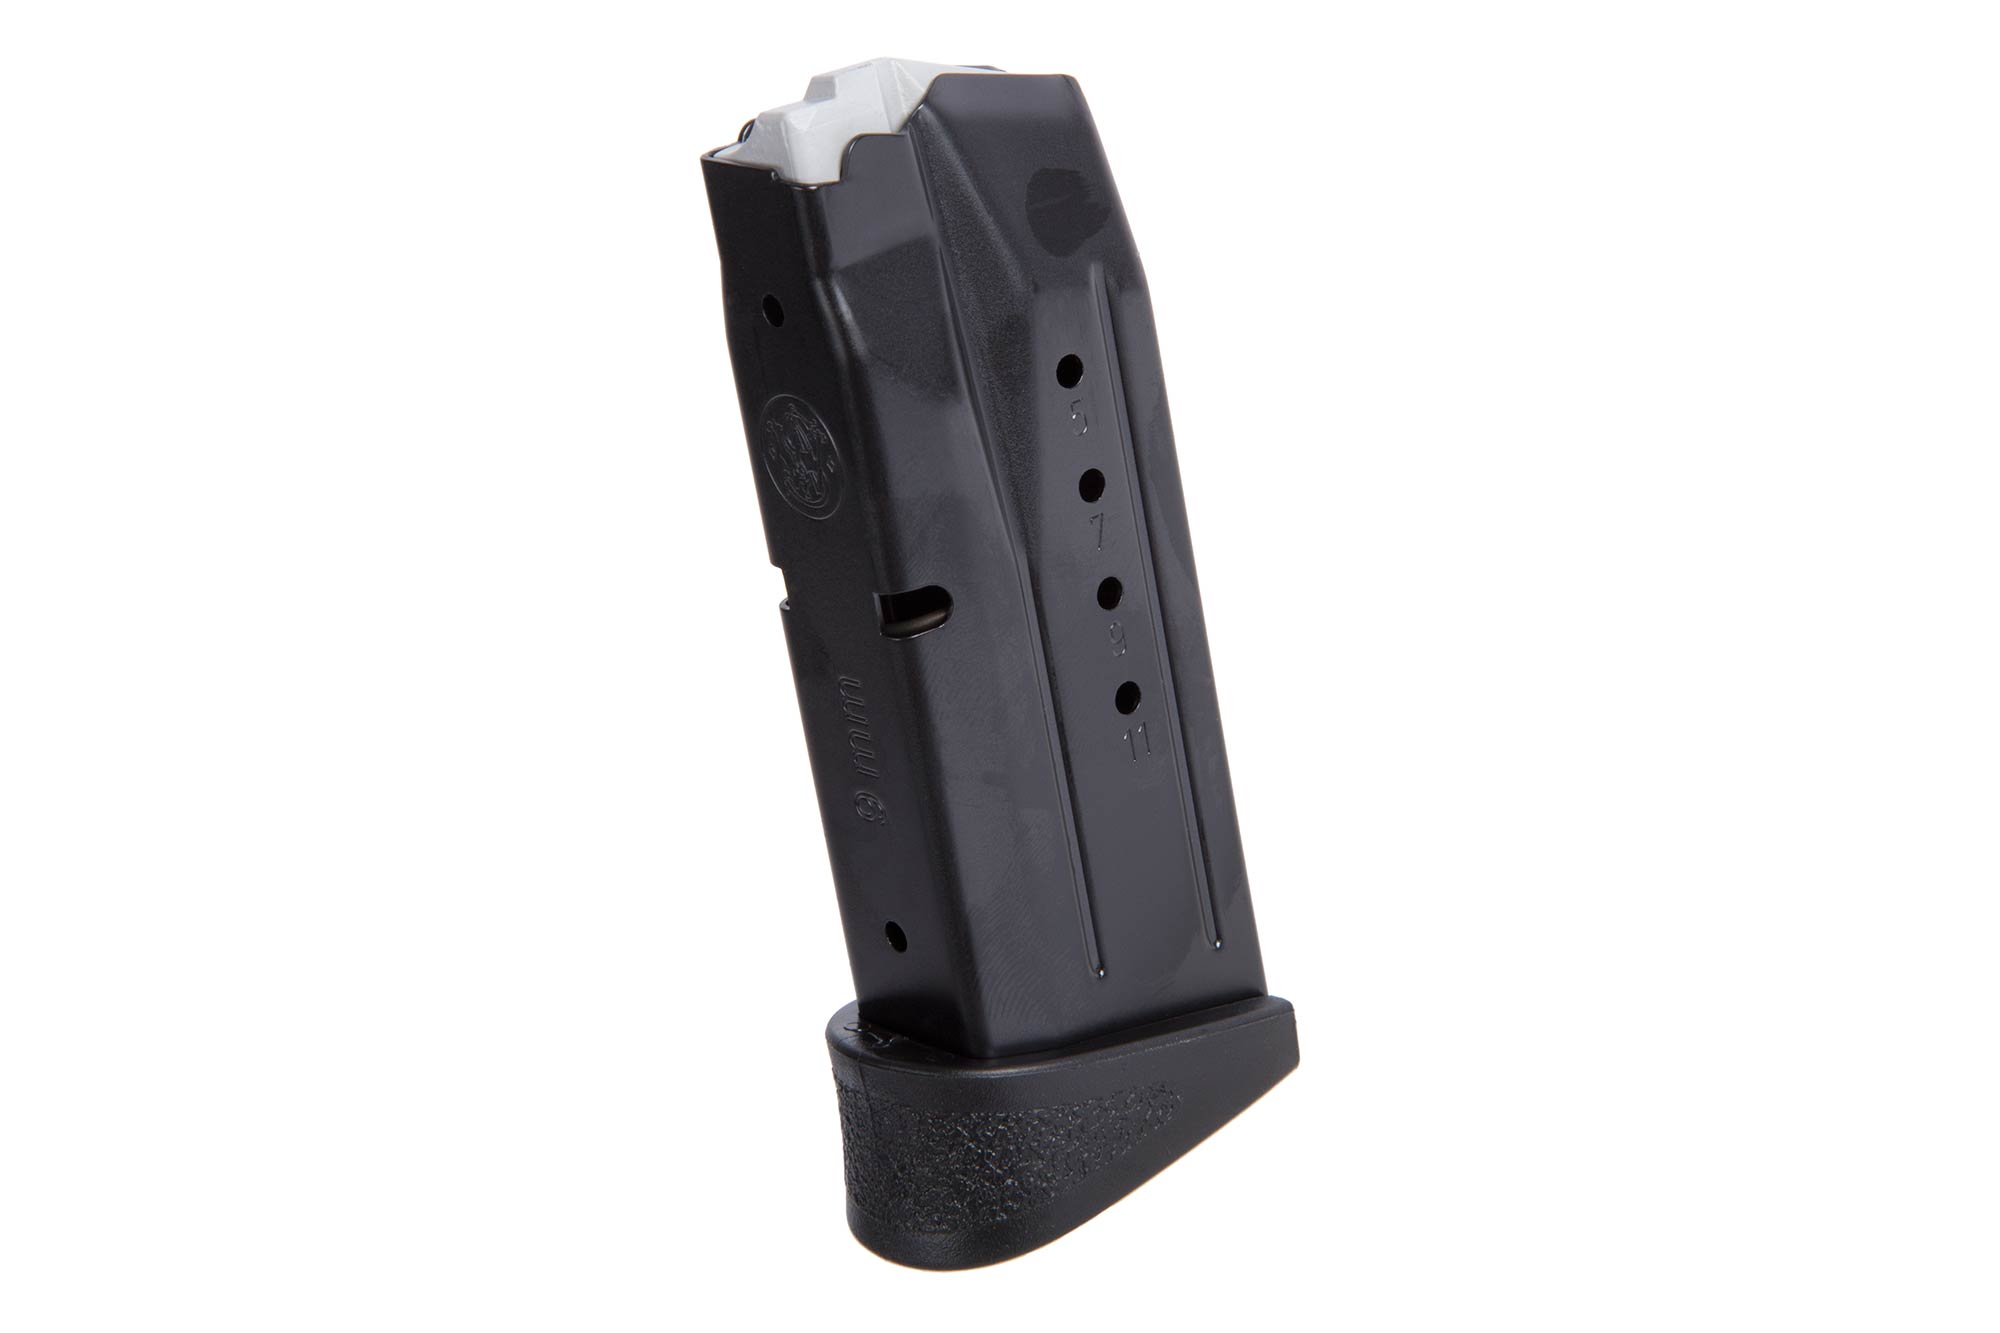 Smith & Wesson M&P COMPACT 9MM 12RD Finger Rest Magazine